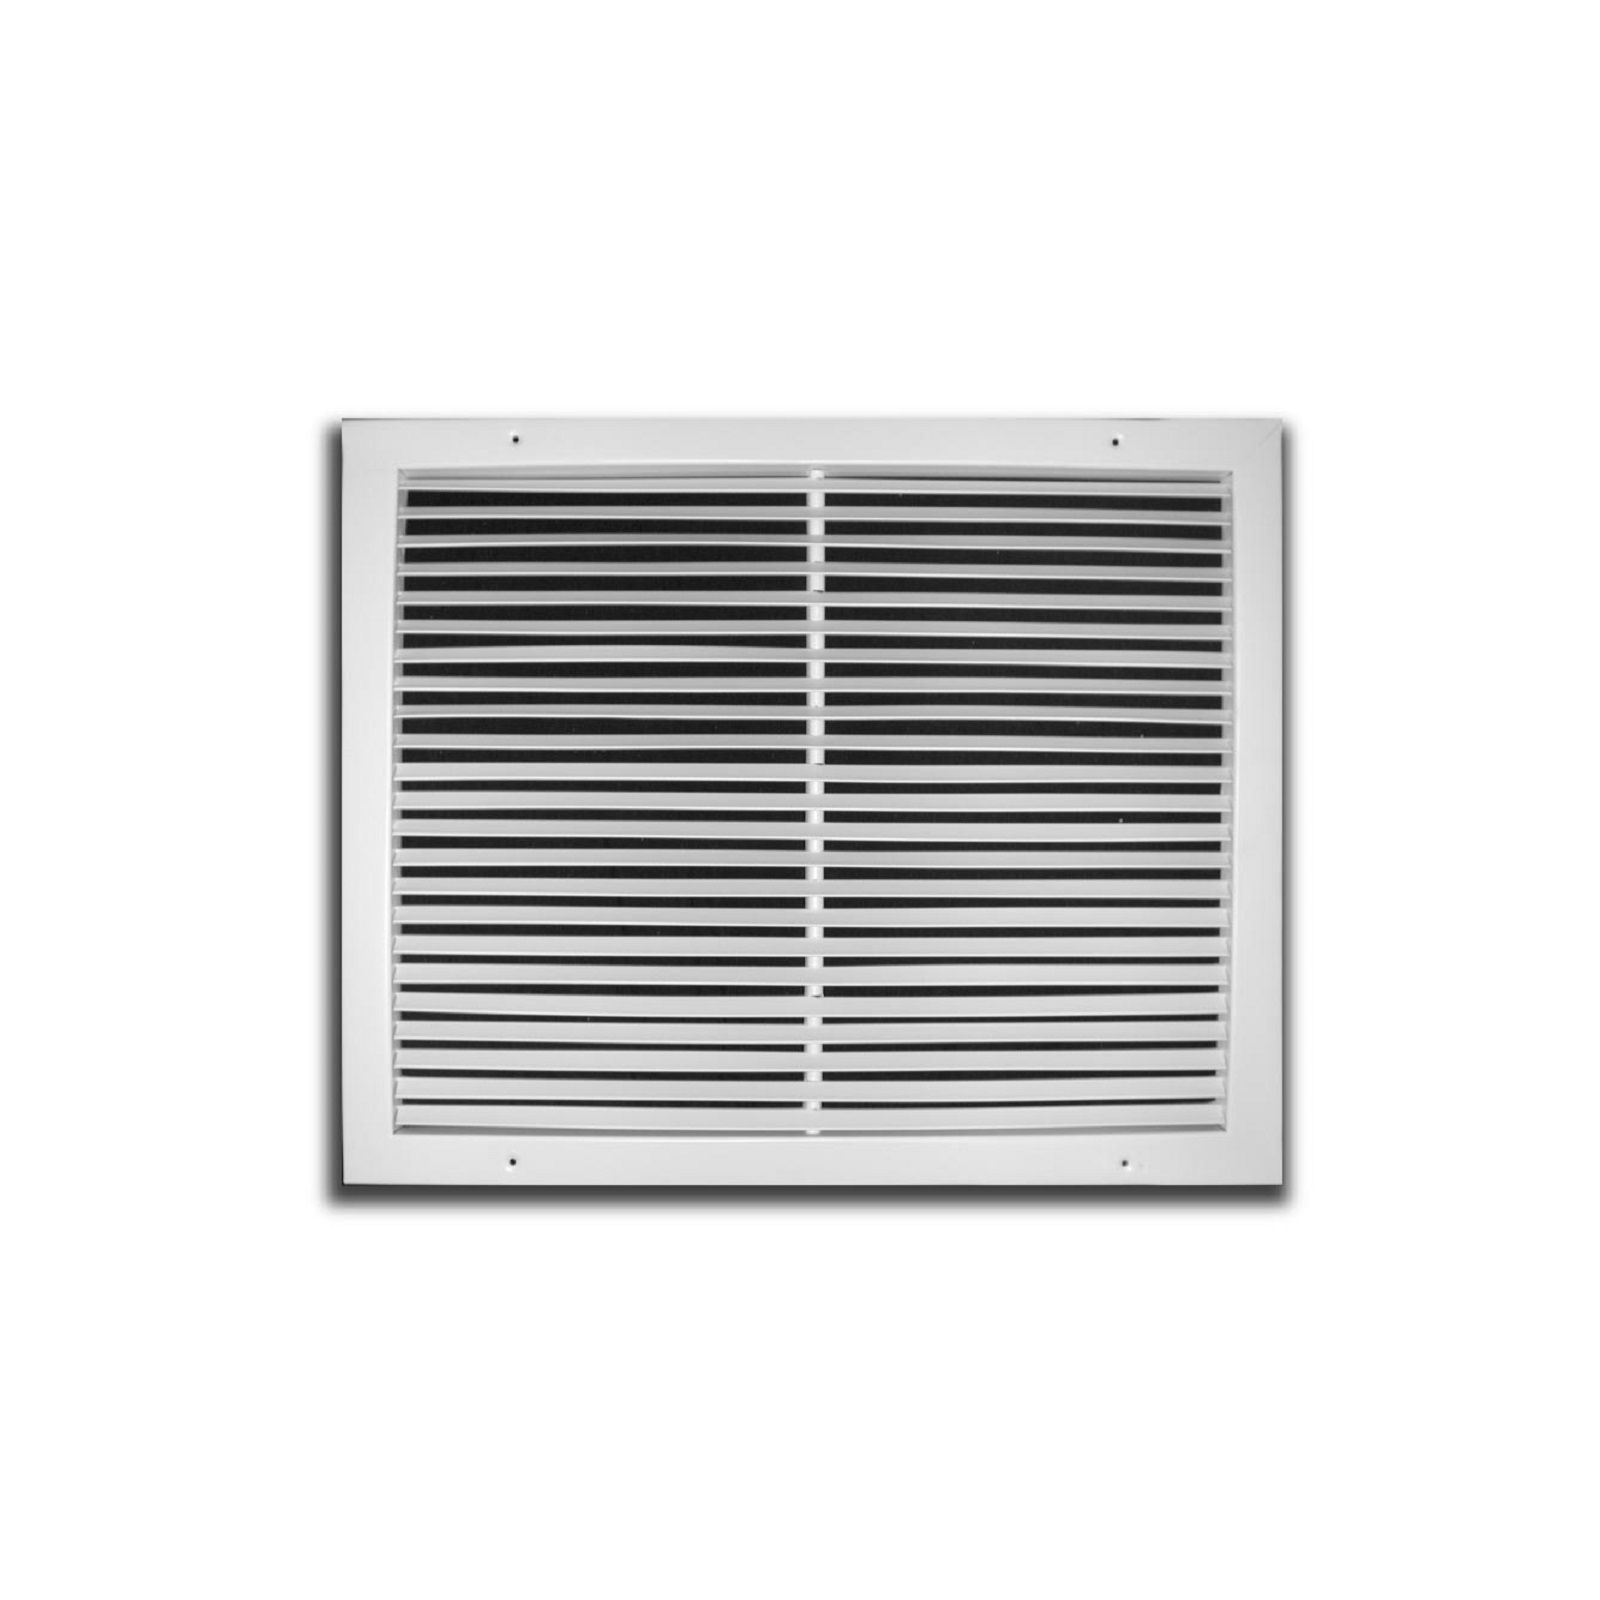 "TRUaire 270 24X10 - Steel Fixed Bar Return Air Grille, White, 24"" X 10"""